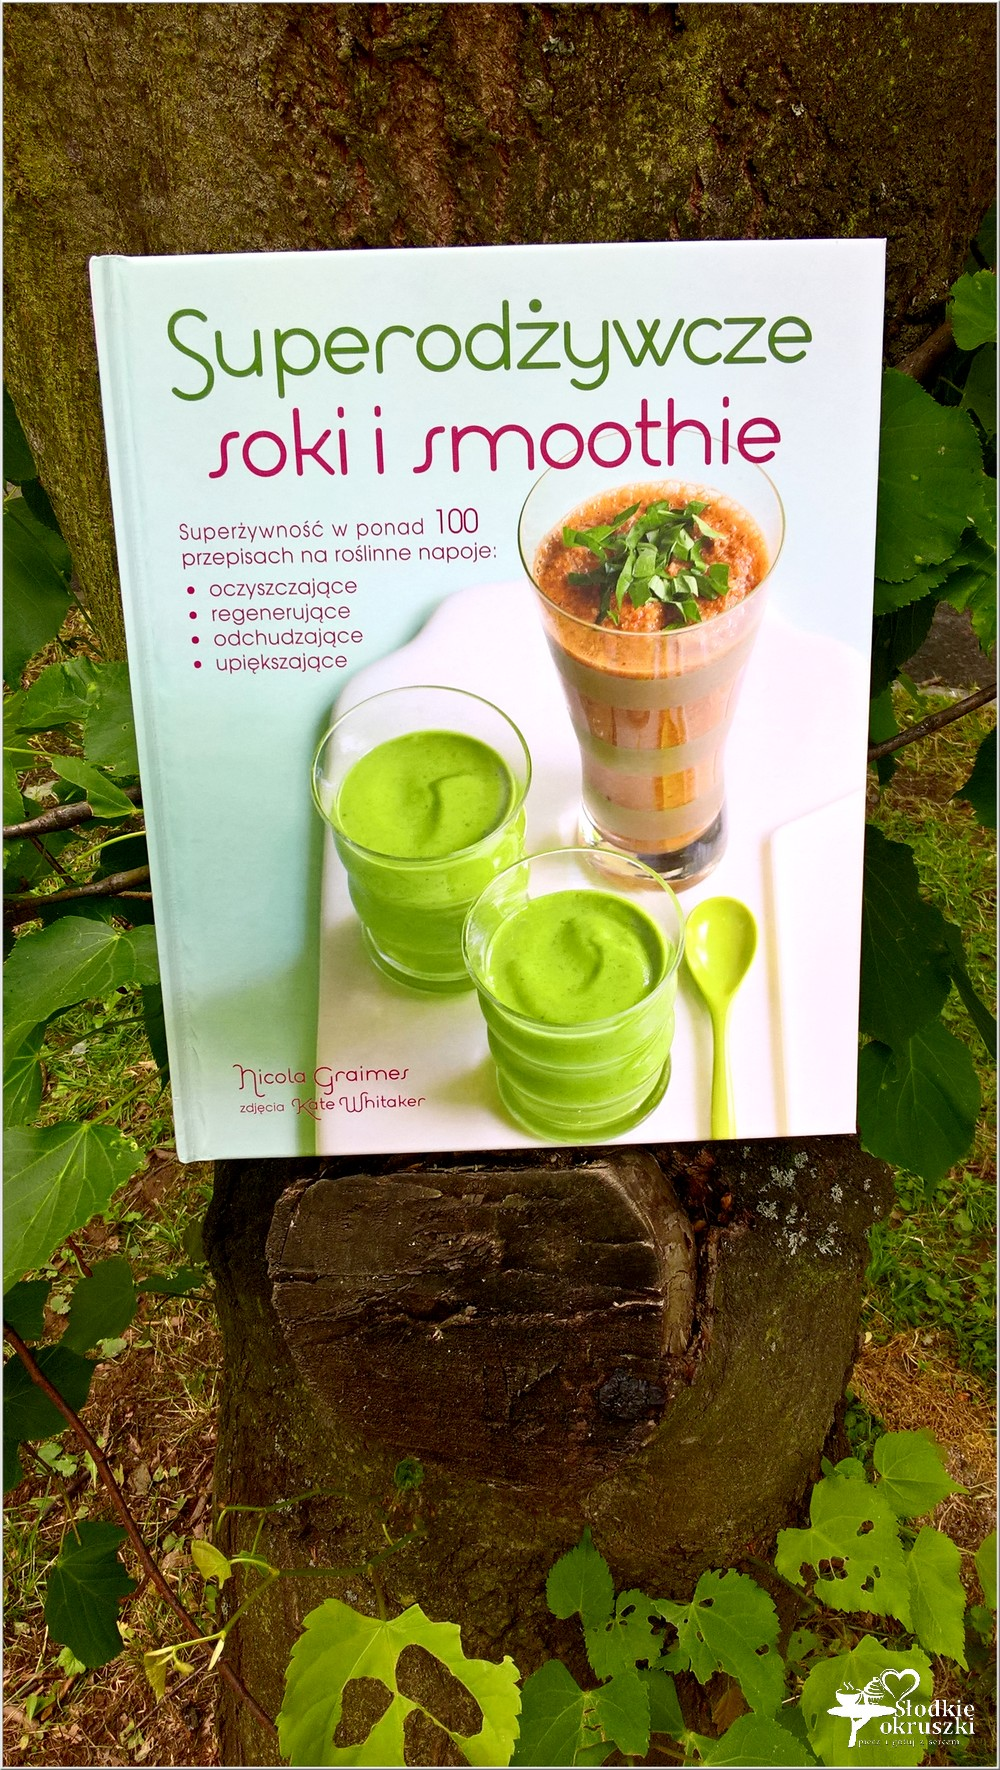 Superodżywcze soki i smoothie (1)